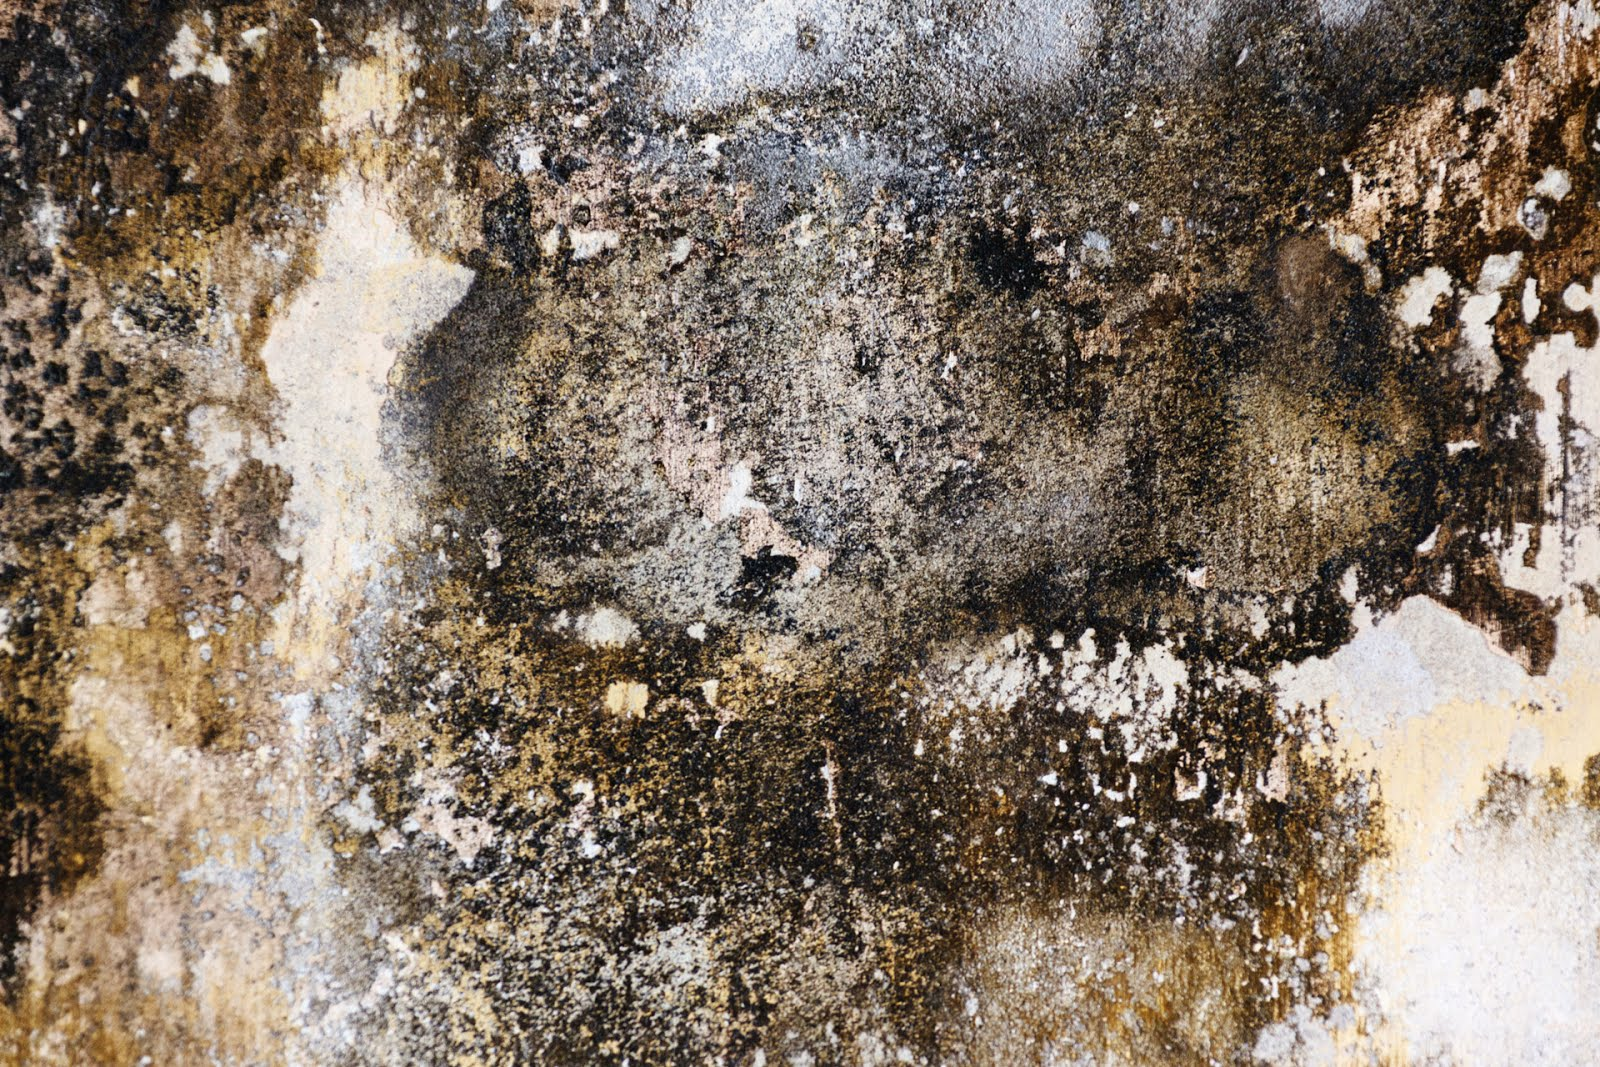 Diy black mold removal - Black Mold Is Usually Found Inside Houses With Excessive Moisture Injury To Other As Well As Wallboard Surfaces Much Is Made Of Such A Mould S Toxicity